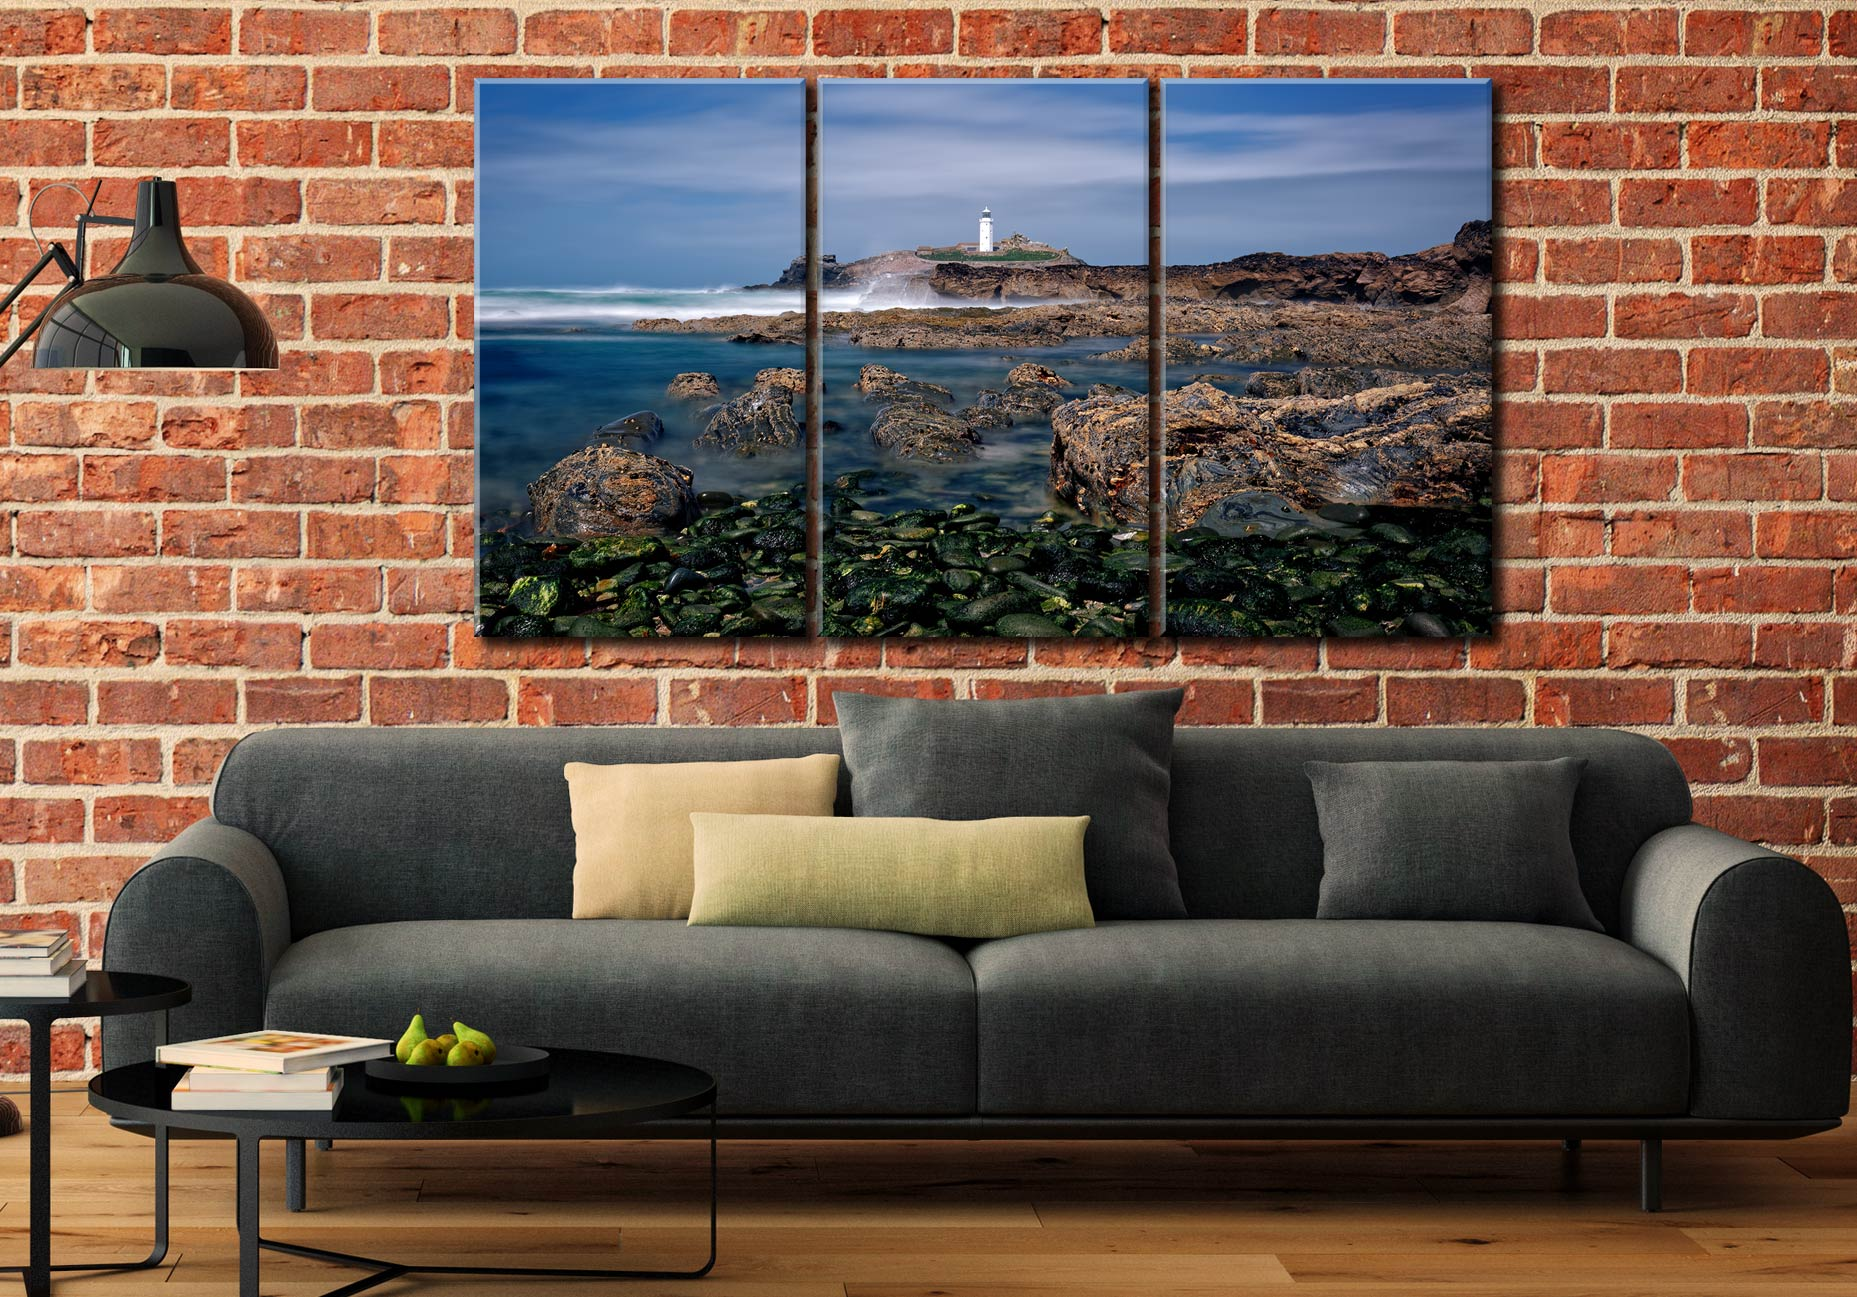 Godrevy Point Lighthouse and Rocks - 3 Panel Canvas on Wall